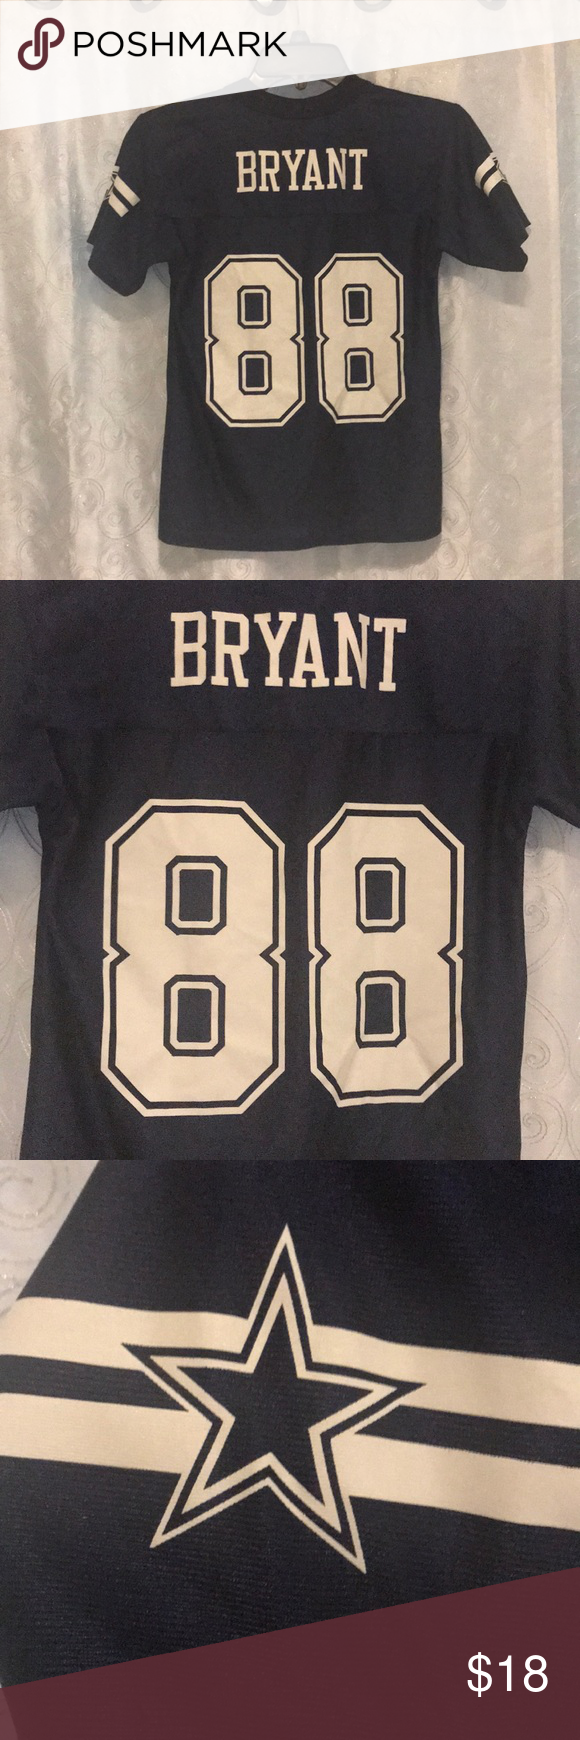 Dallas Cowboys Dez Bryant Jersey Size Kids Small! This jersey is in excellent condition and is ready to be worn. (See photos) Comes from a smoke free home. Feel free to bundle and make an offer! Dallas Cowboys Shirts & Tops Tees - Short Sleeve #dezbryantjersey Dallas Cowboys Dez Bryant Jersey Size Kids Small! This jersey is in excellent condition and is ready to be worn. (See photos) Comes from a smoke free home. Feel free to bundle and make an offer! Dallas Cowboys Shirts & Tops Tees - Short Sl #dezbryant